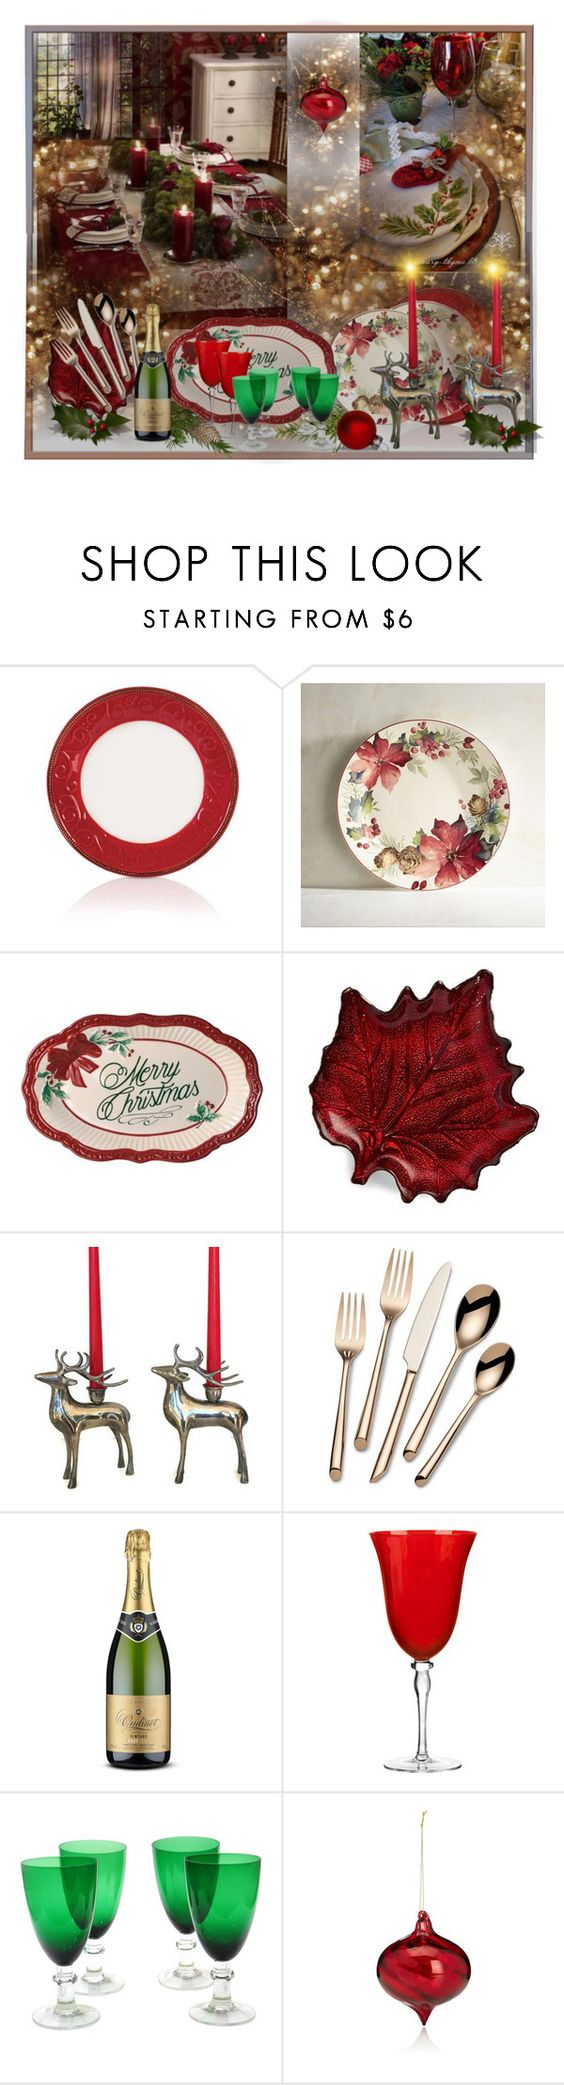 """""""Christmas table - contest"""" by barbara-gennari ❤ liked on Polyvore featuring interior, interiors, interior design, home, home decor, interior decorating, Fitz & Floyd, Pier 1 Imports, Two's Company and Towle"""